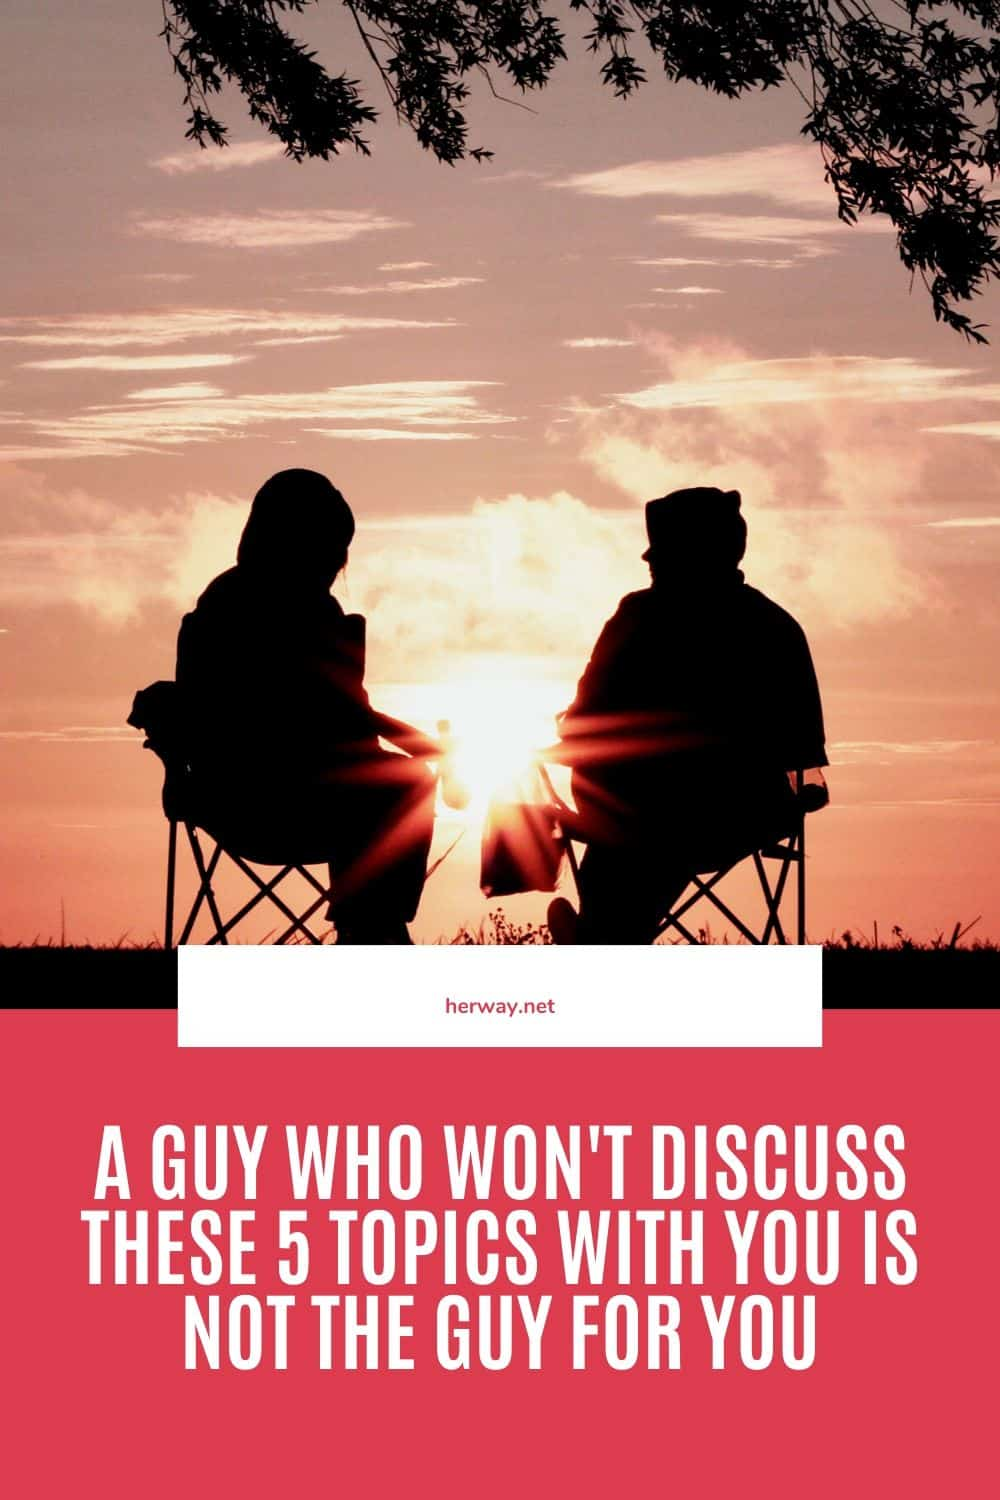 A Guy Who Won't Discuss These 5 Topics With You Is Not The Guy For You